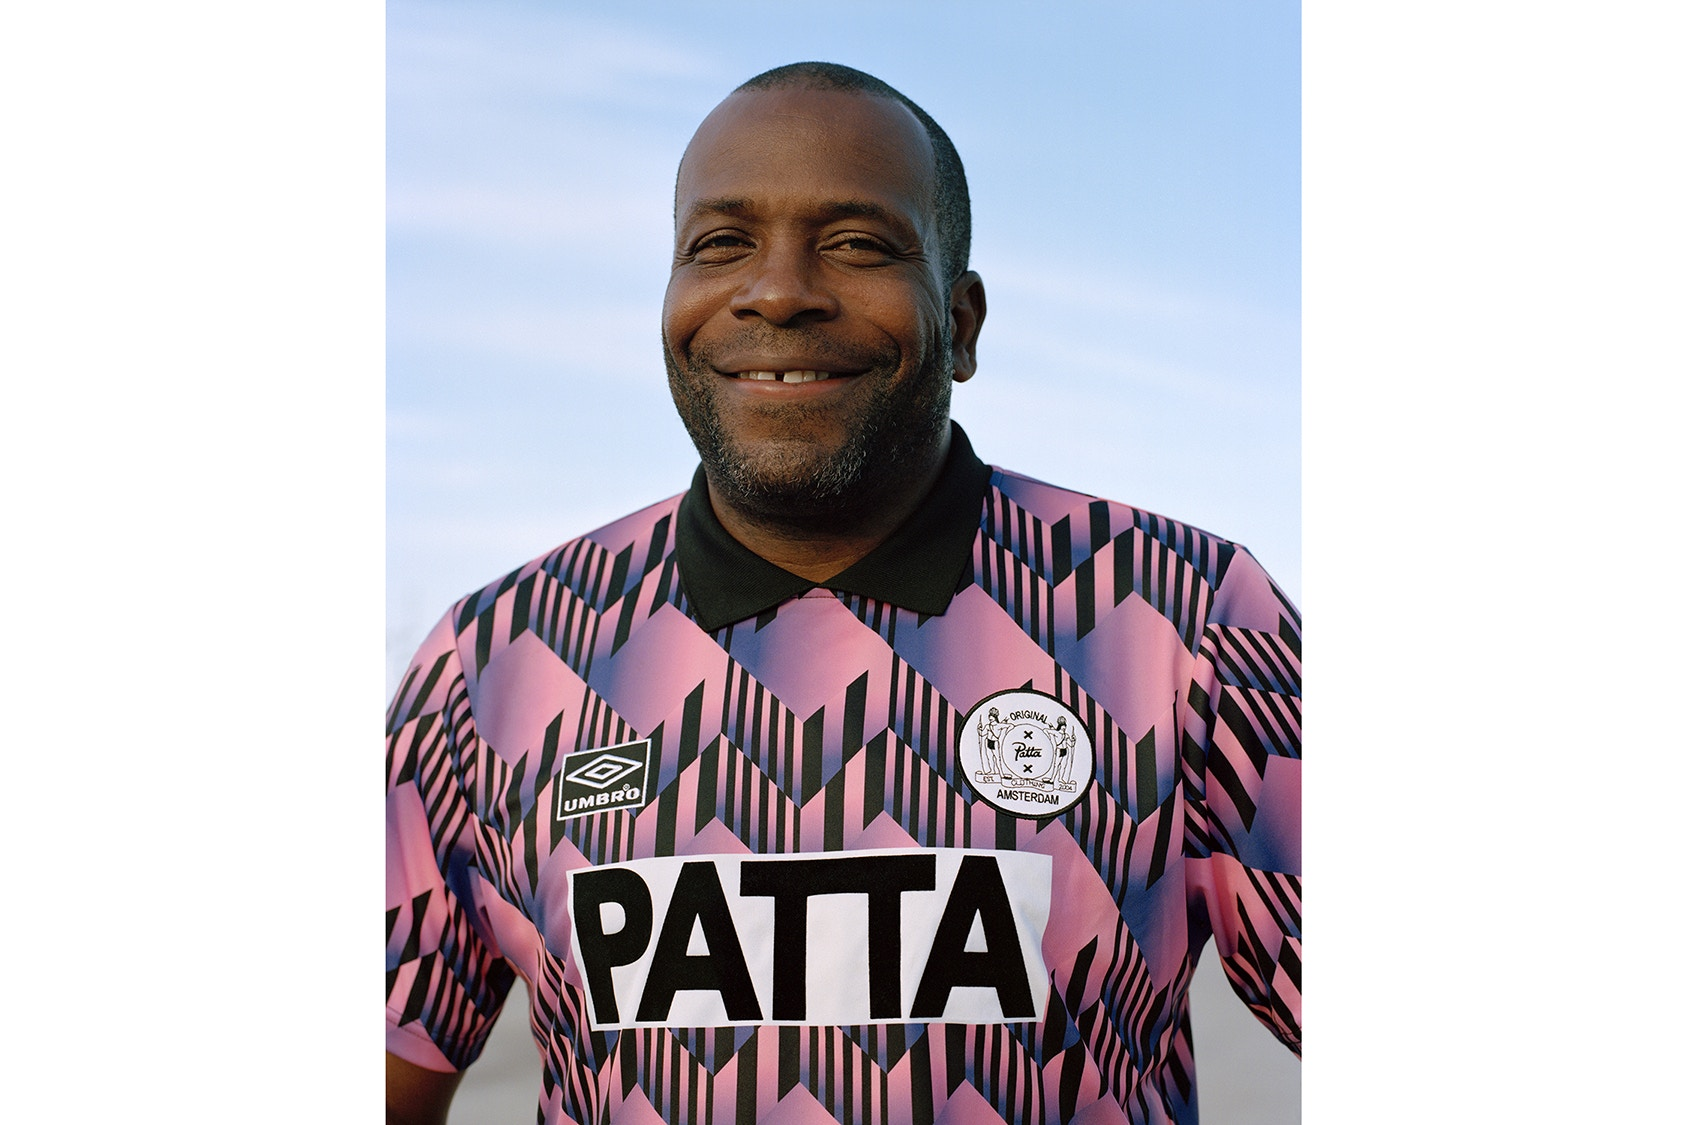 patta-umbro-football-jersey-collection-1